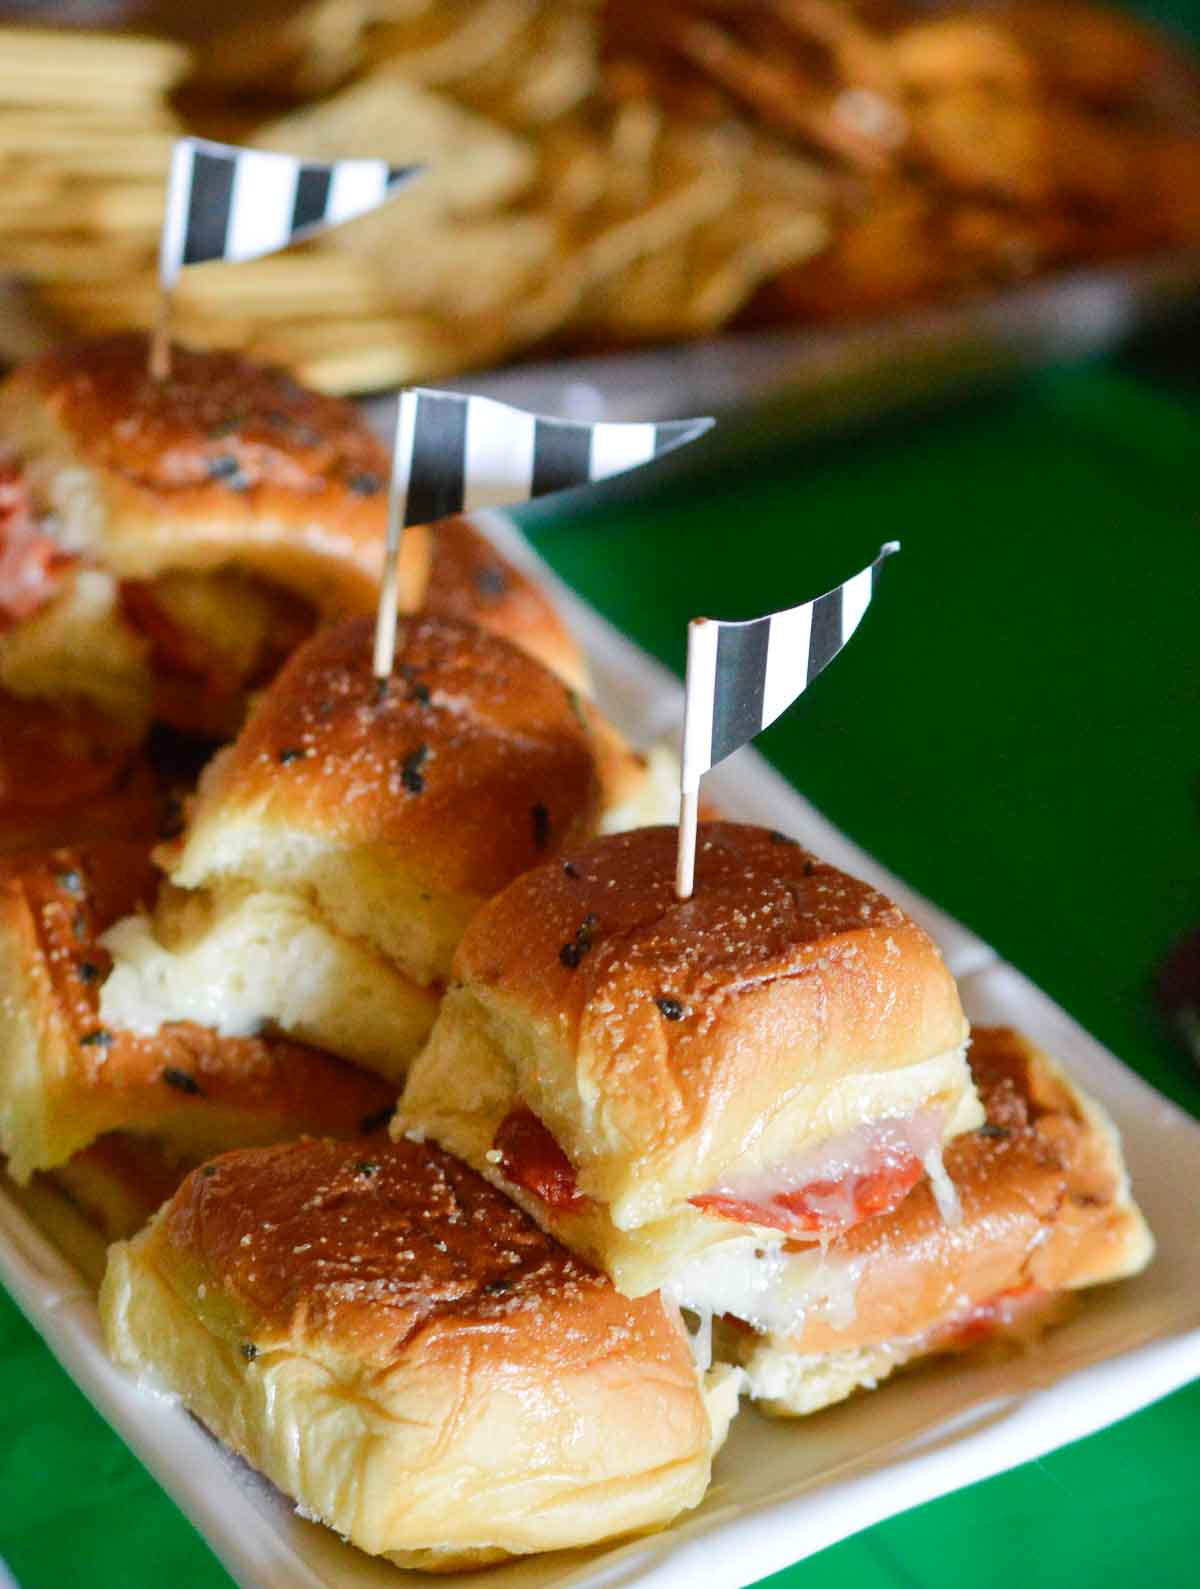 Oven Baked Sandwiches for an easy game day snack!